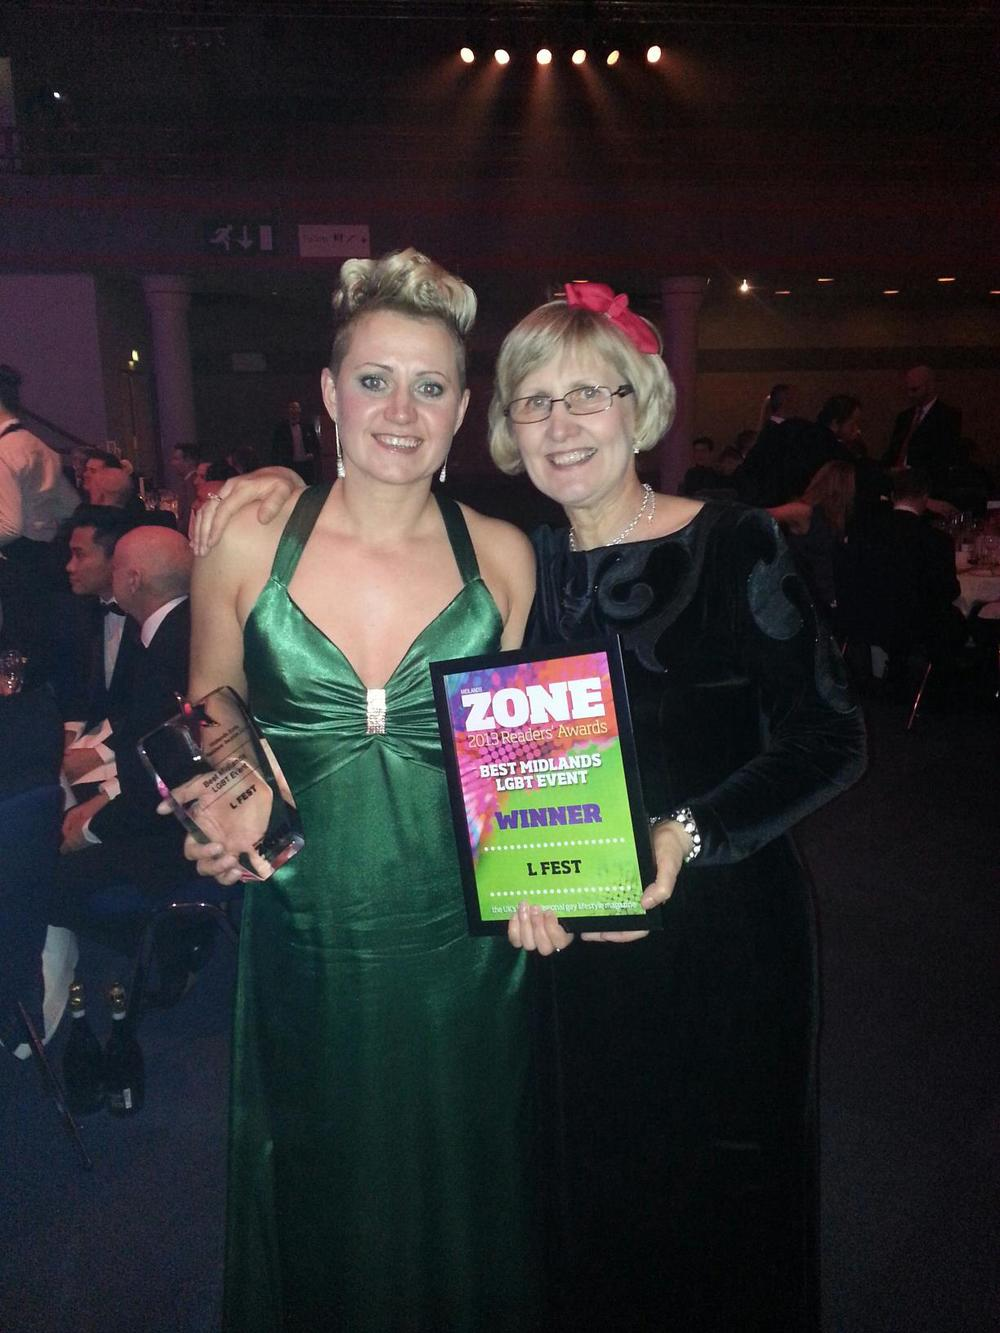 Me & Mum with the Midland Zone Award